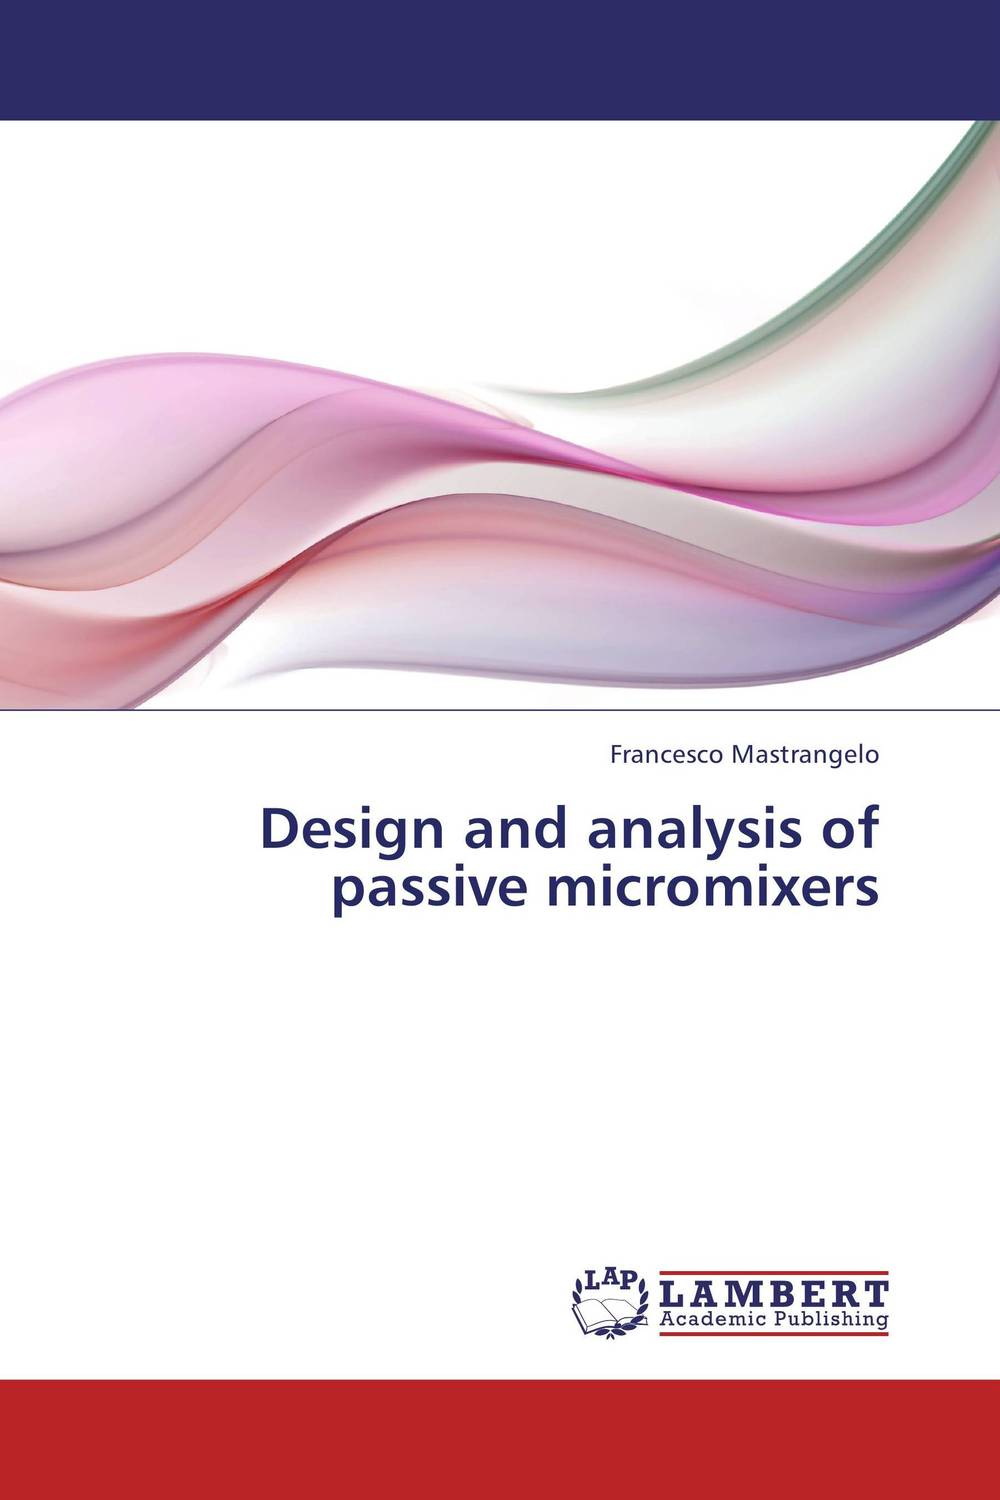 Design and analysis of passive micromixers molecular and nano electronics analysis design and simulation 17